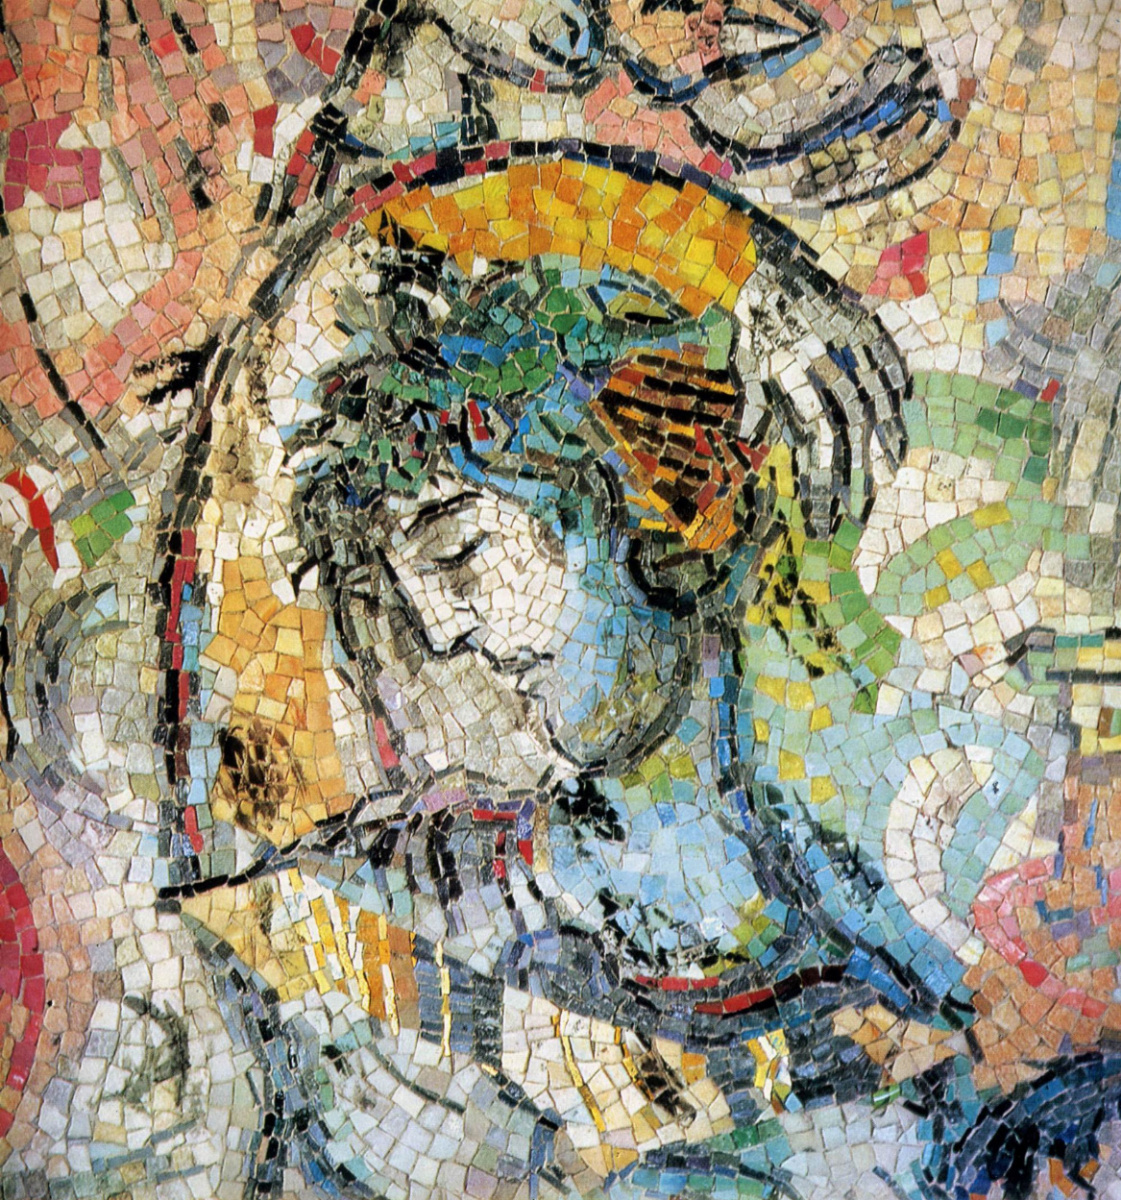 Covenant Odyssey. Mosaic (detail) by Marc Chagall